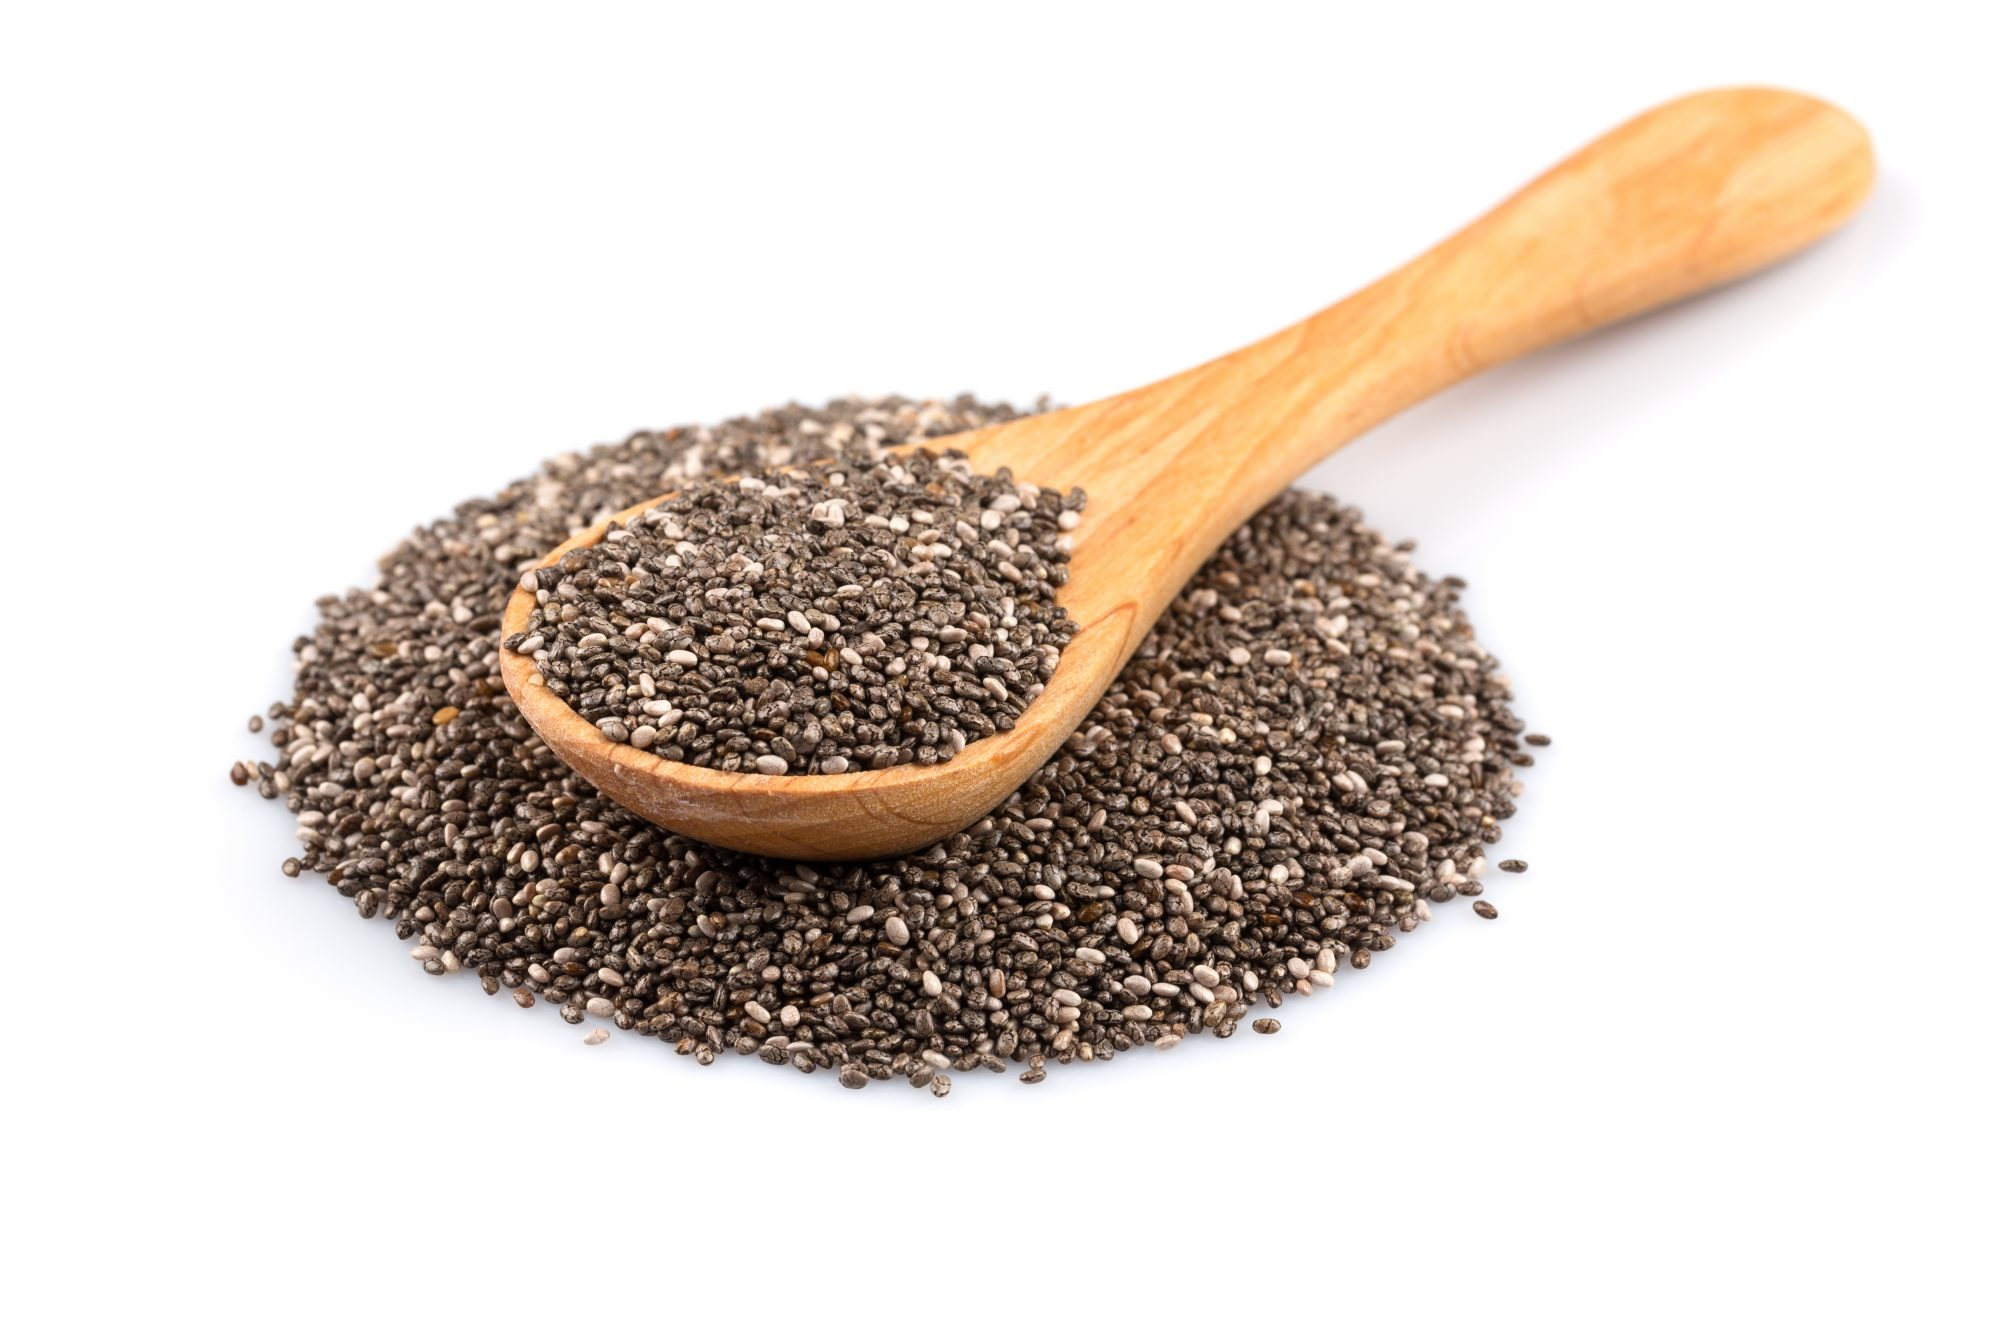 Chia Seeds Getty 2/18/20